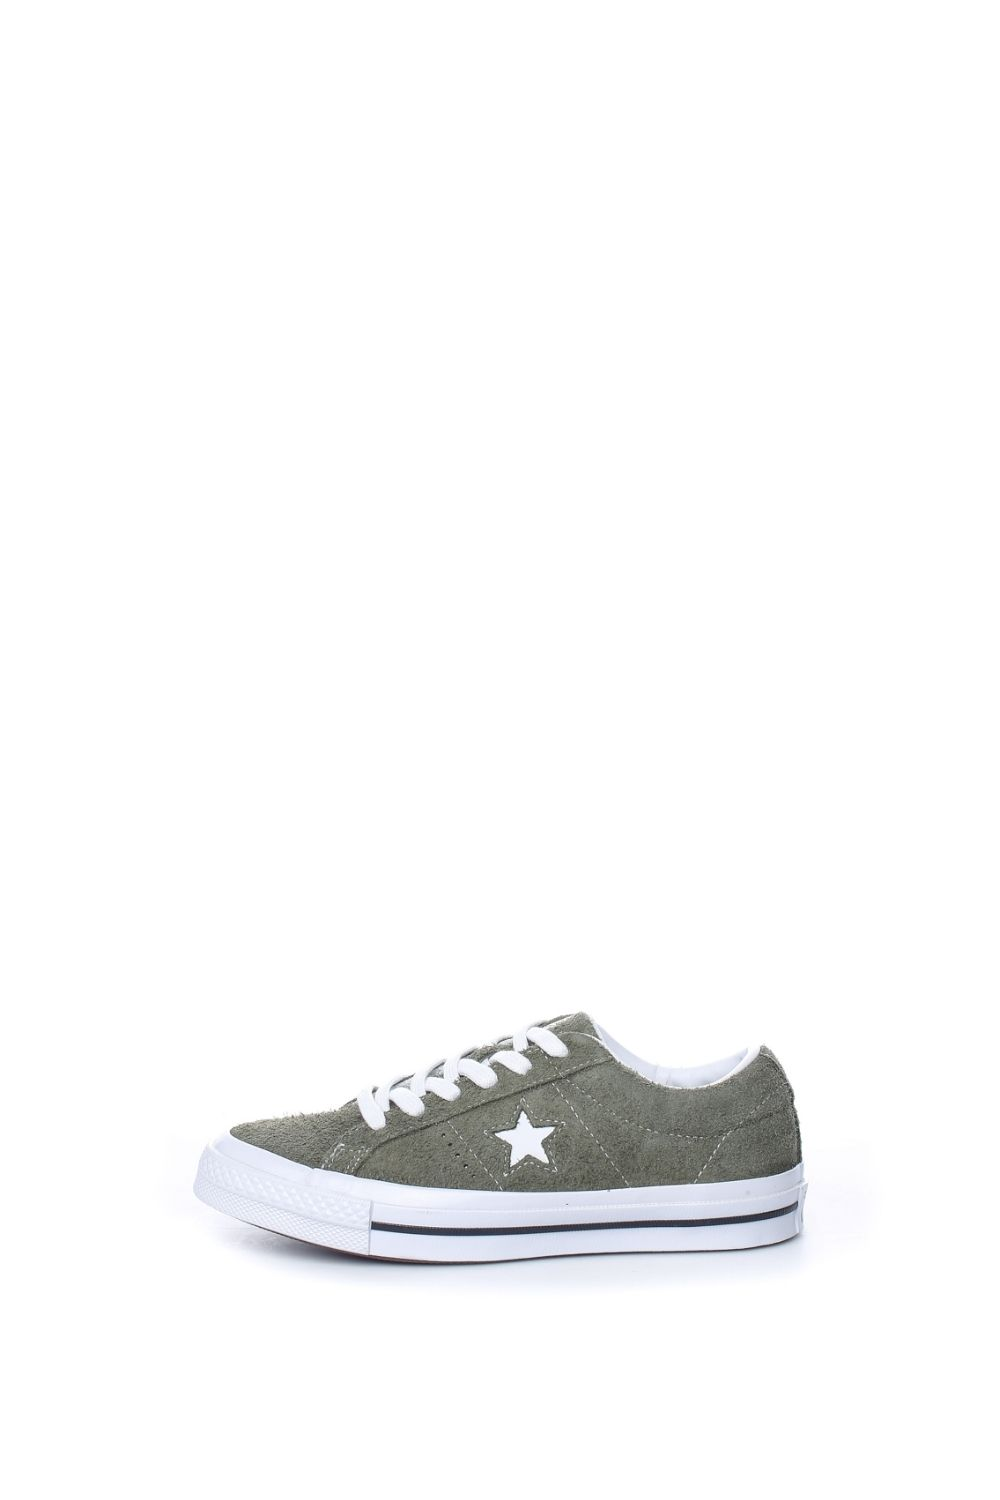 CONVERSE – Παιδικά sneakers Converse ONE STAR χακί